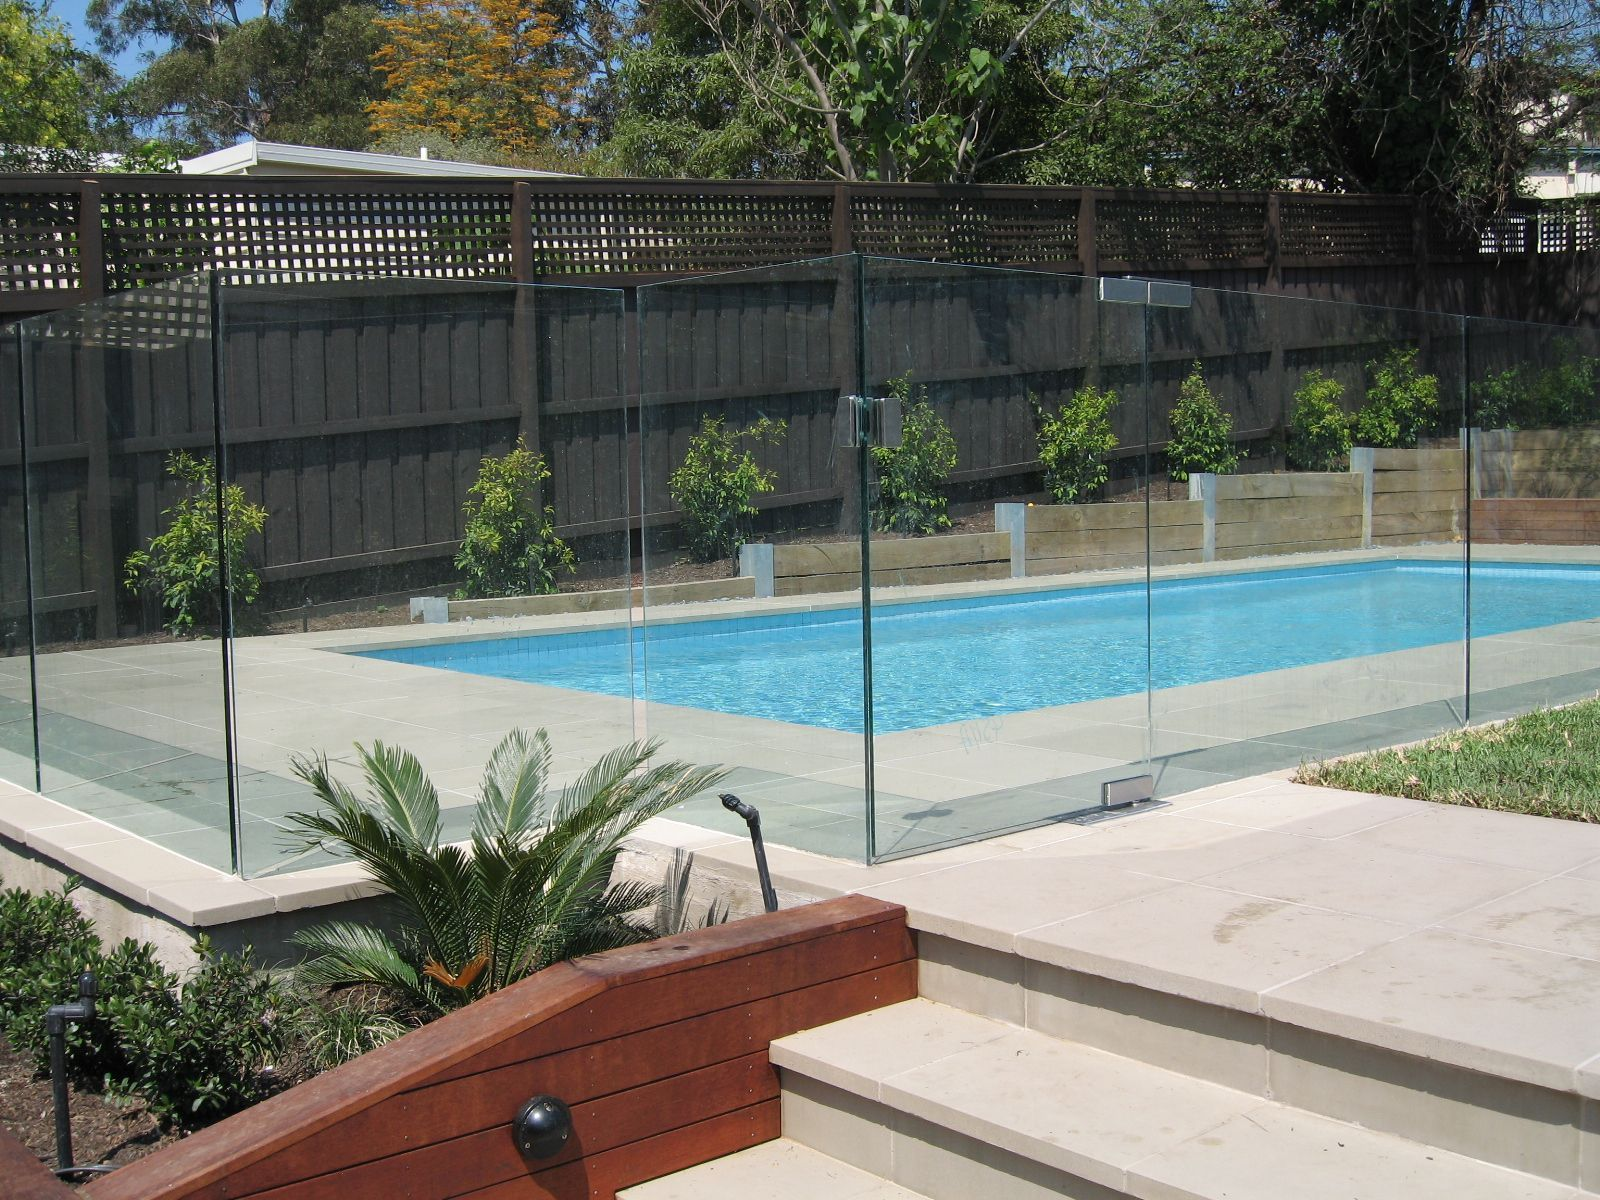 27 Awesome Pool Fence Ideas For Privacy And Protection